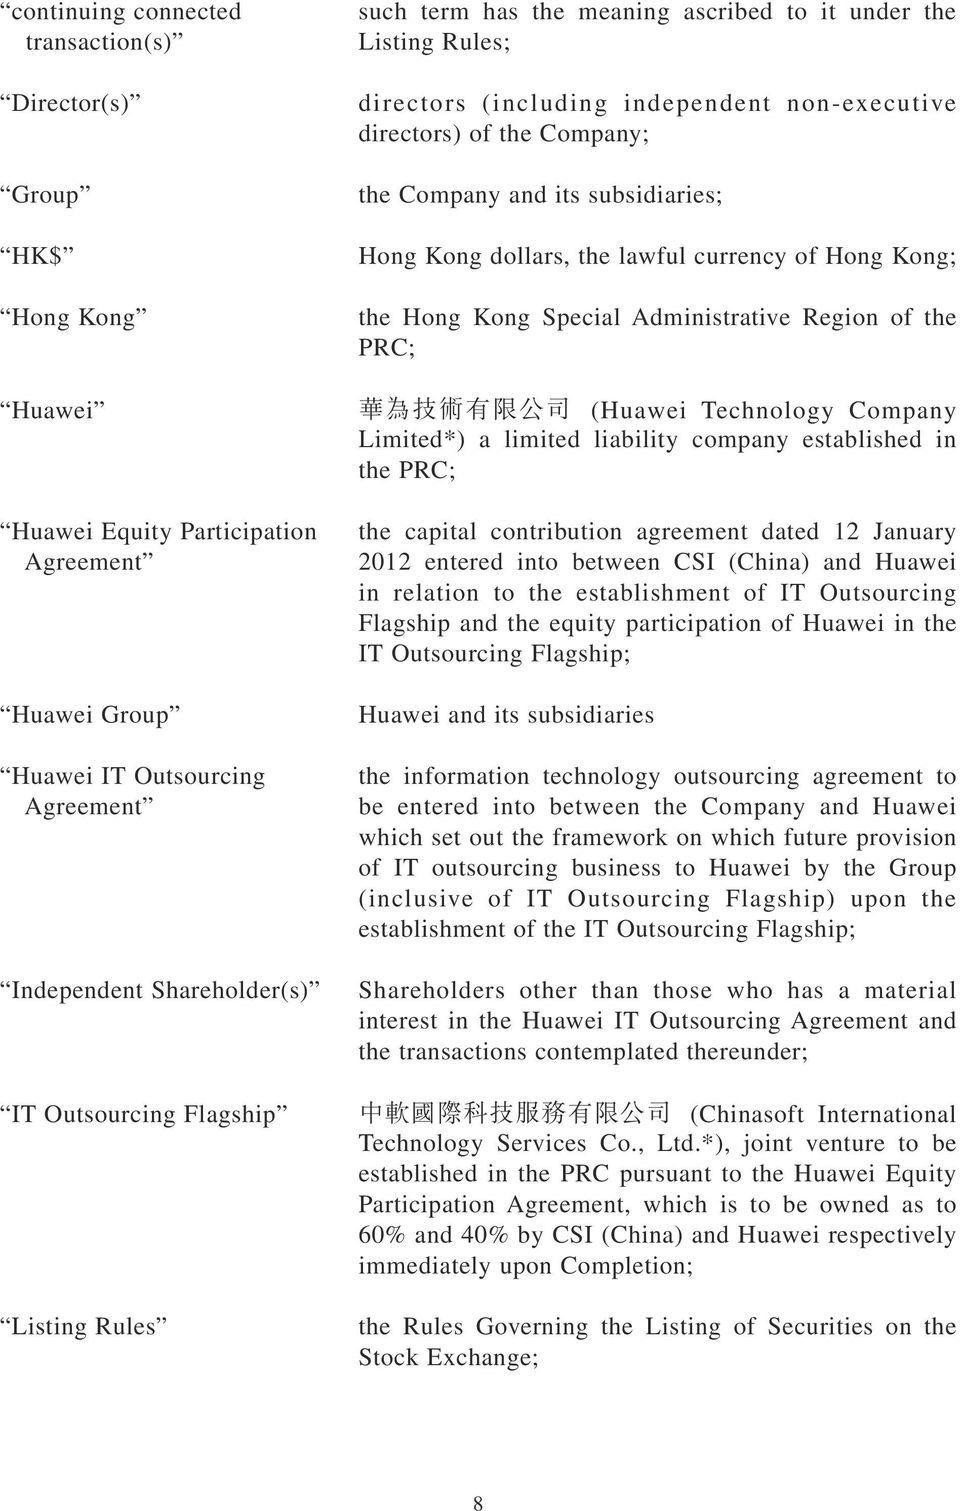 Hong Kong dollars, the lawful currency of Hong Kong; the Hong Kong Special Administrative Region of the PRC; 華 為 技 術 有 限 公 司 (Huawei Technology Company Limited*) a limited liability company